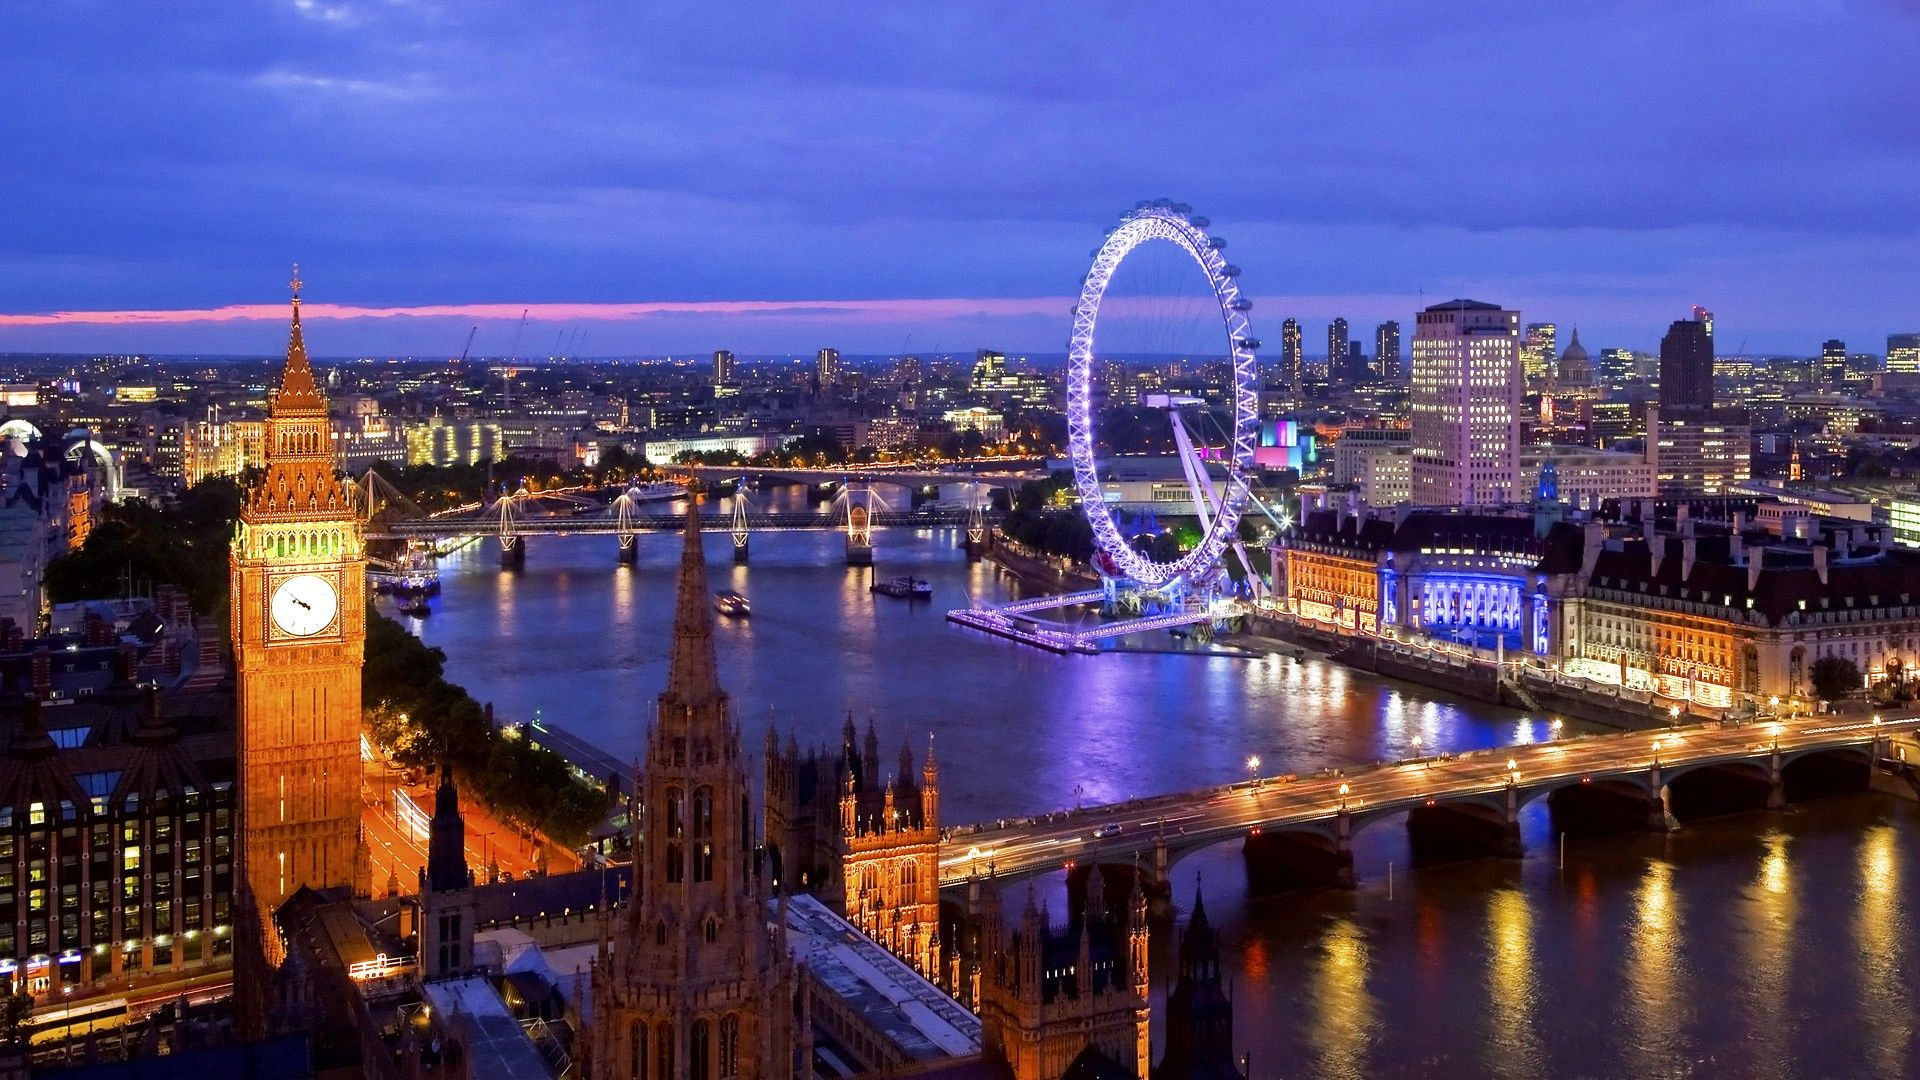 Map Uk Attractions%0A A place I u    ve been to is London  England and it u    s probably the best place  I u    ve been to because of all the places the city has to offer